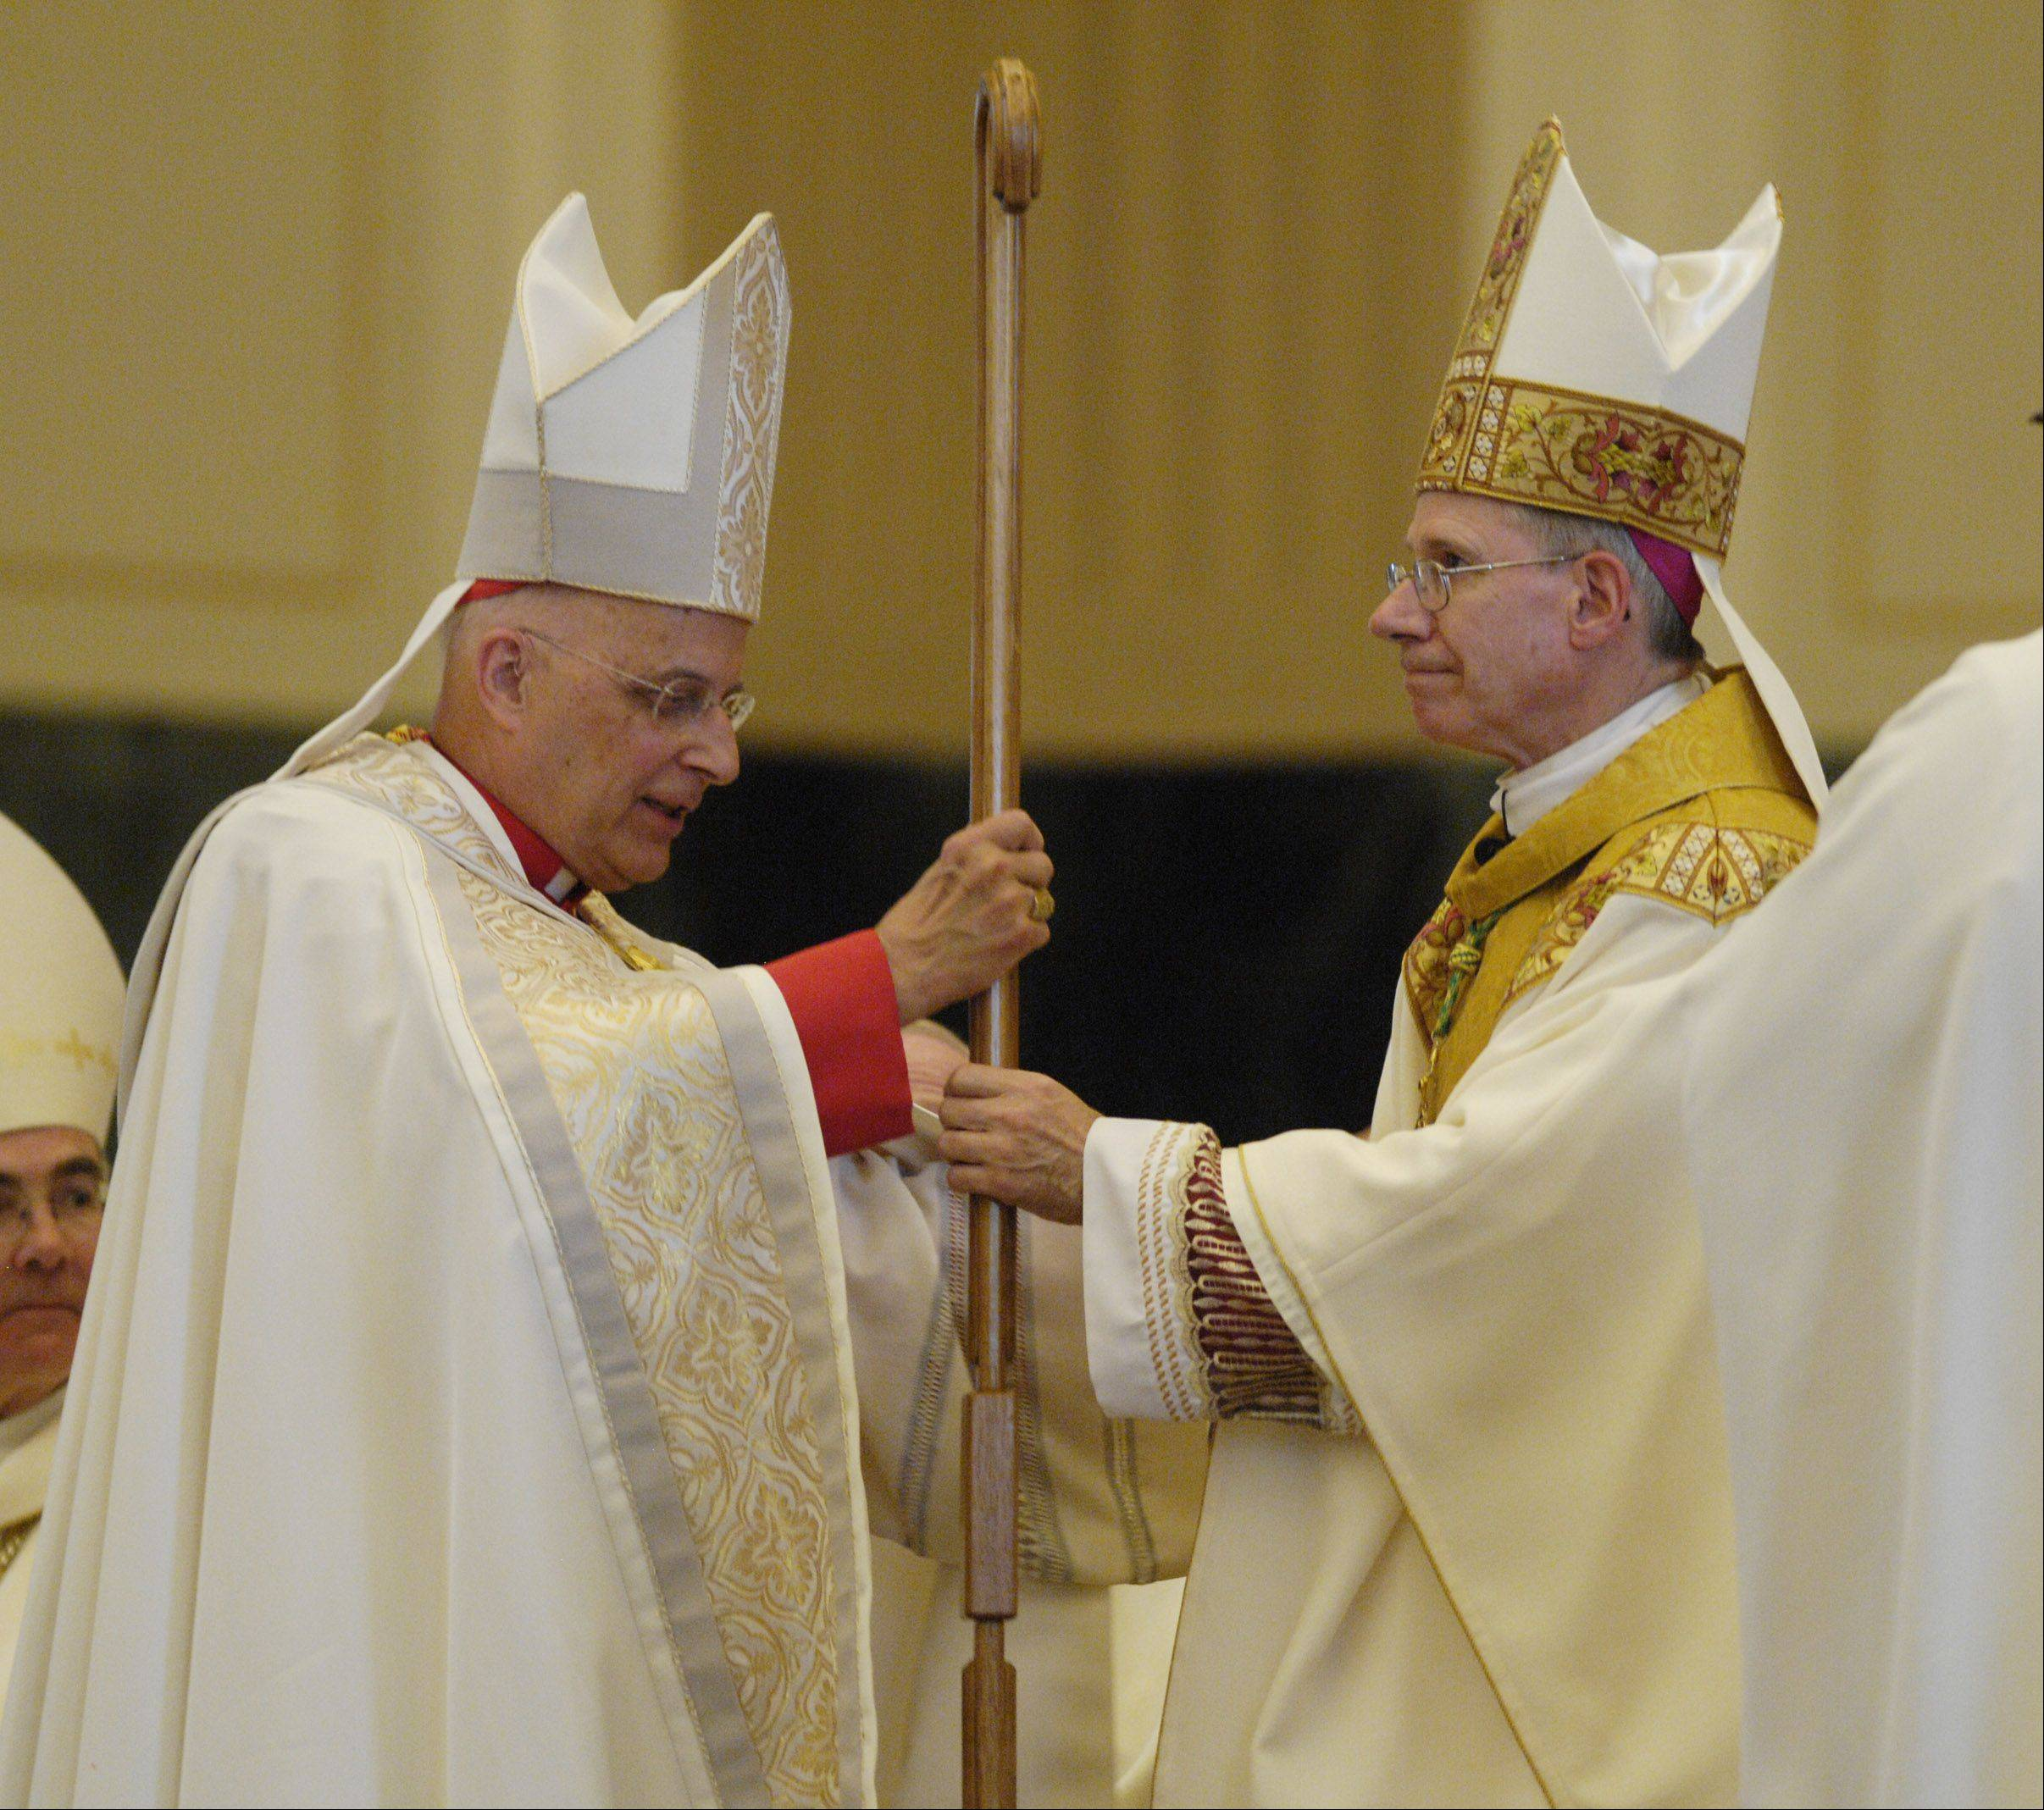 Francis Cardinal George of the Chicago Archdiocese passes the crosier to Rev. R. Daniel Conlon, during his installation as the fifth bishop of the Diocese of Joliet. The installation took place at the Cathedral of St. Raymond in Joliet.